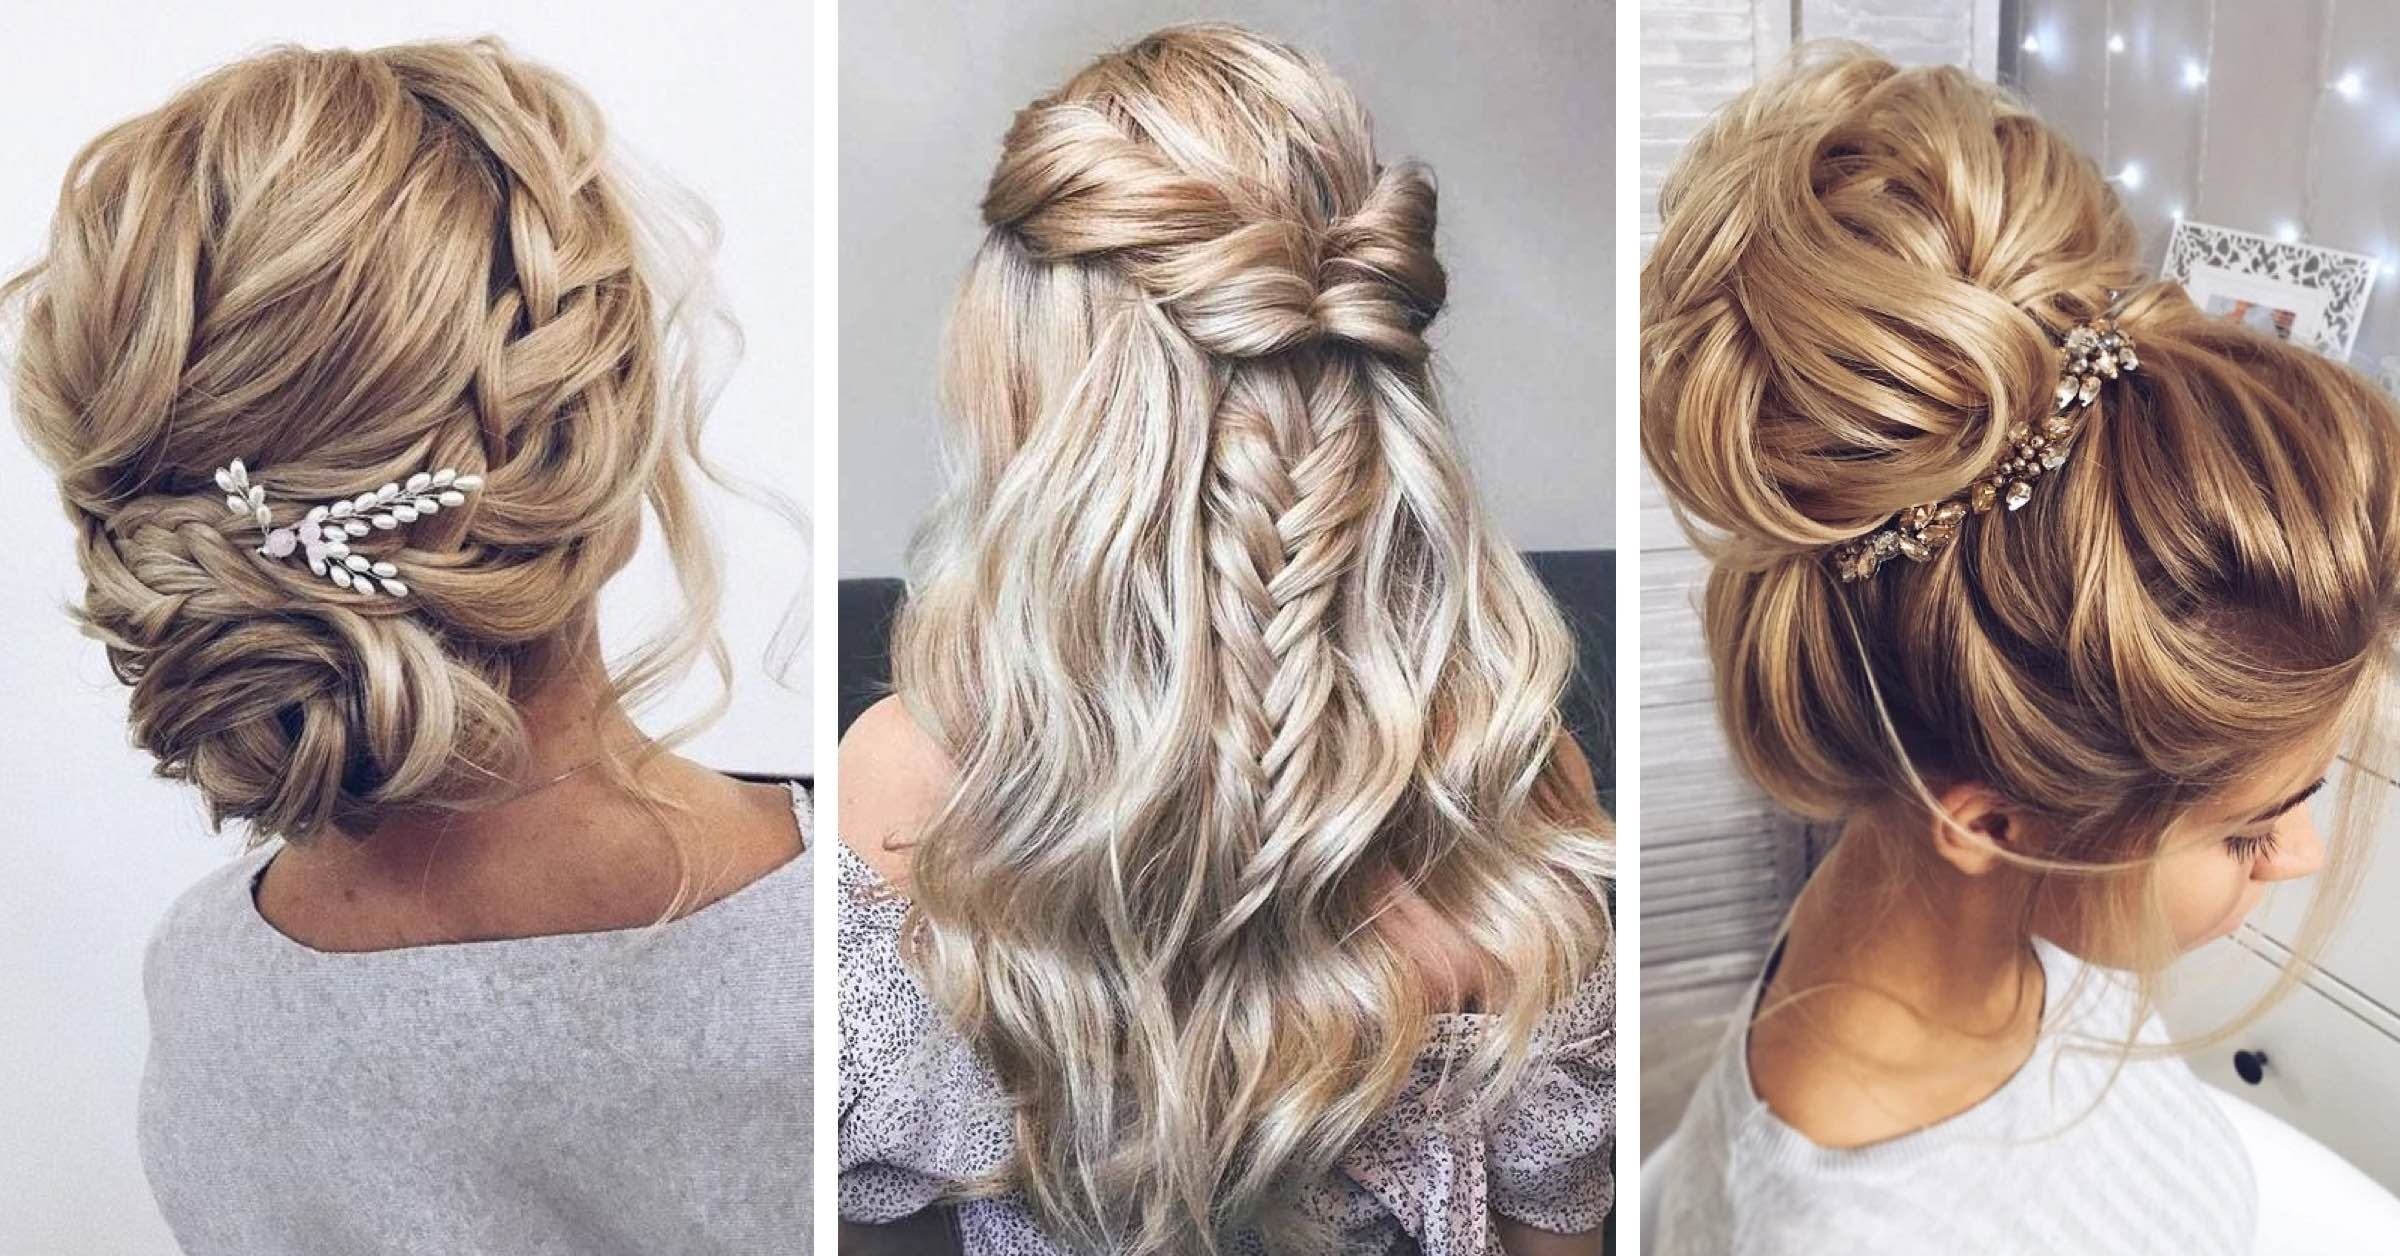 18 Special Occasion Hairstyles That Will Make You Enchant The Big Day! Intended For Most Up To Date Braids And Waves For Any Occasion (View 14 of 15)